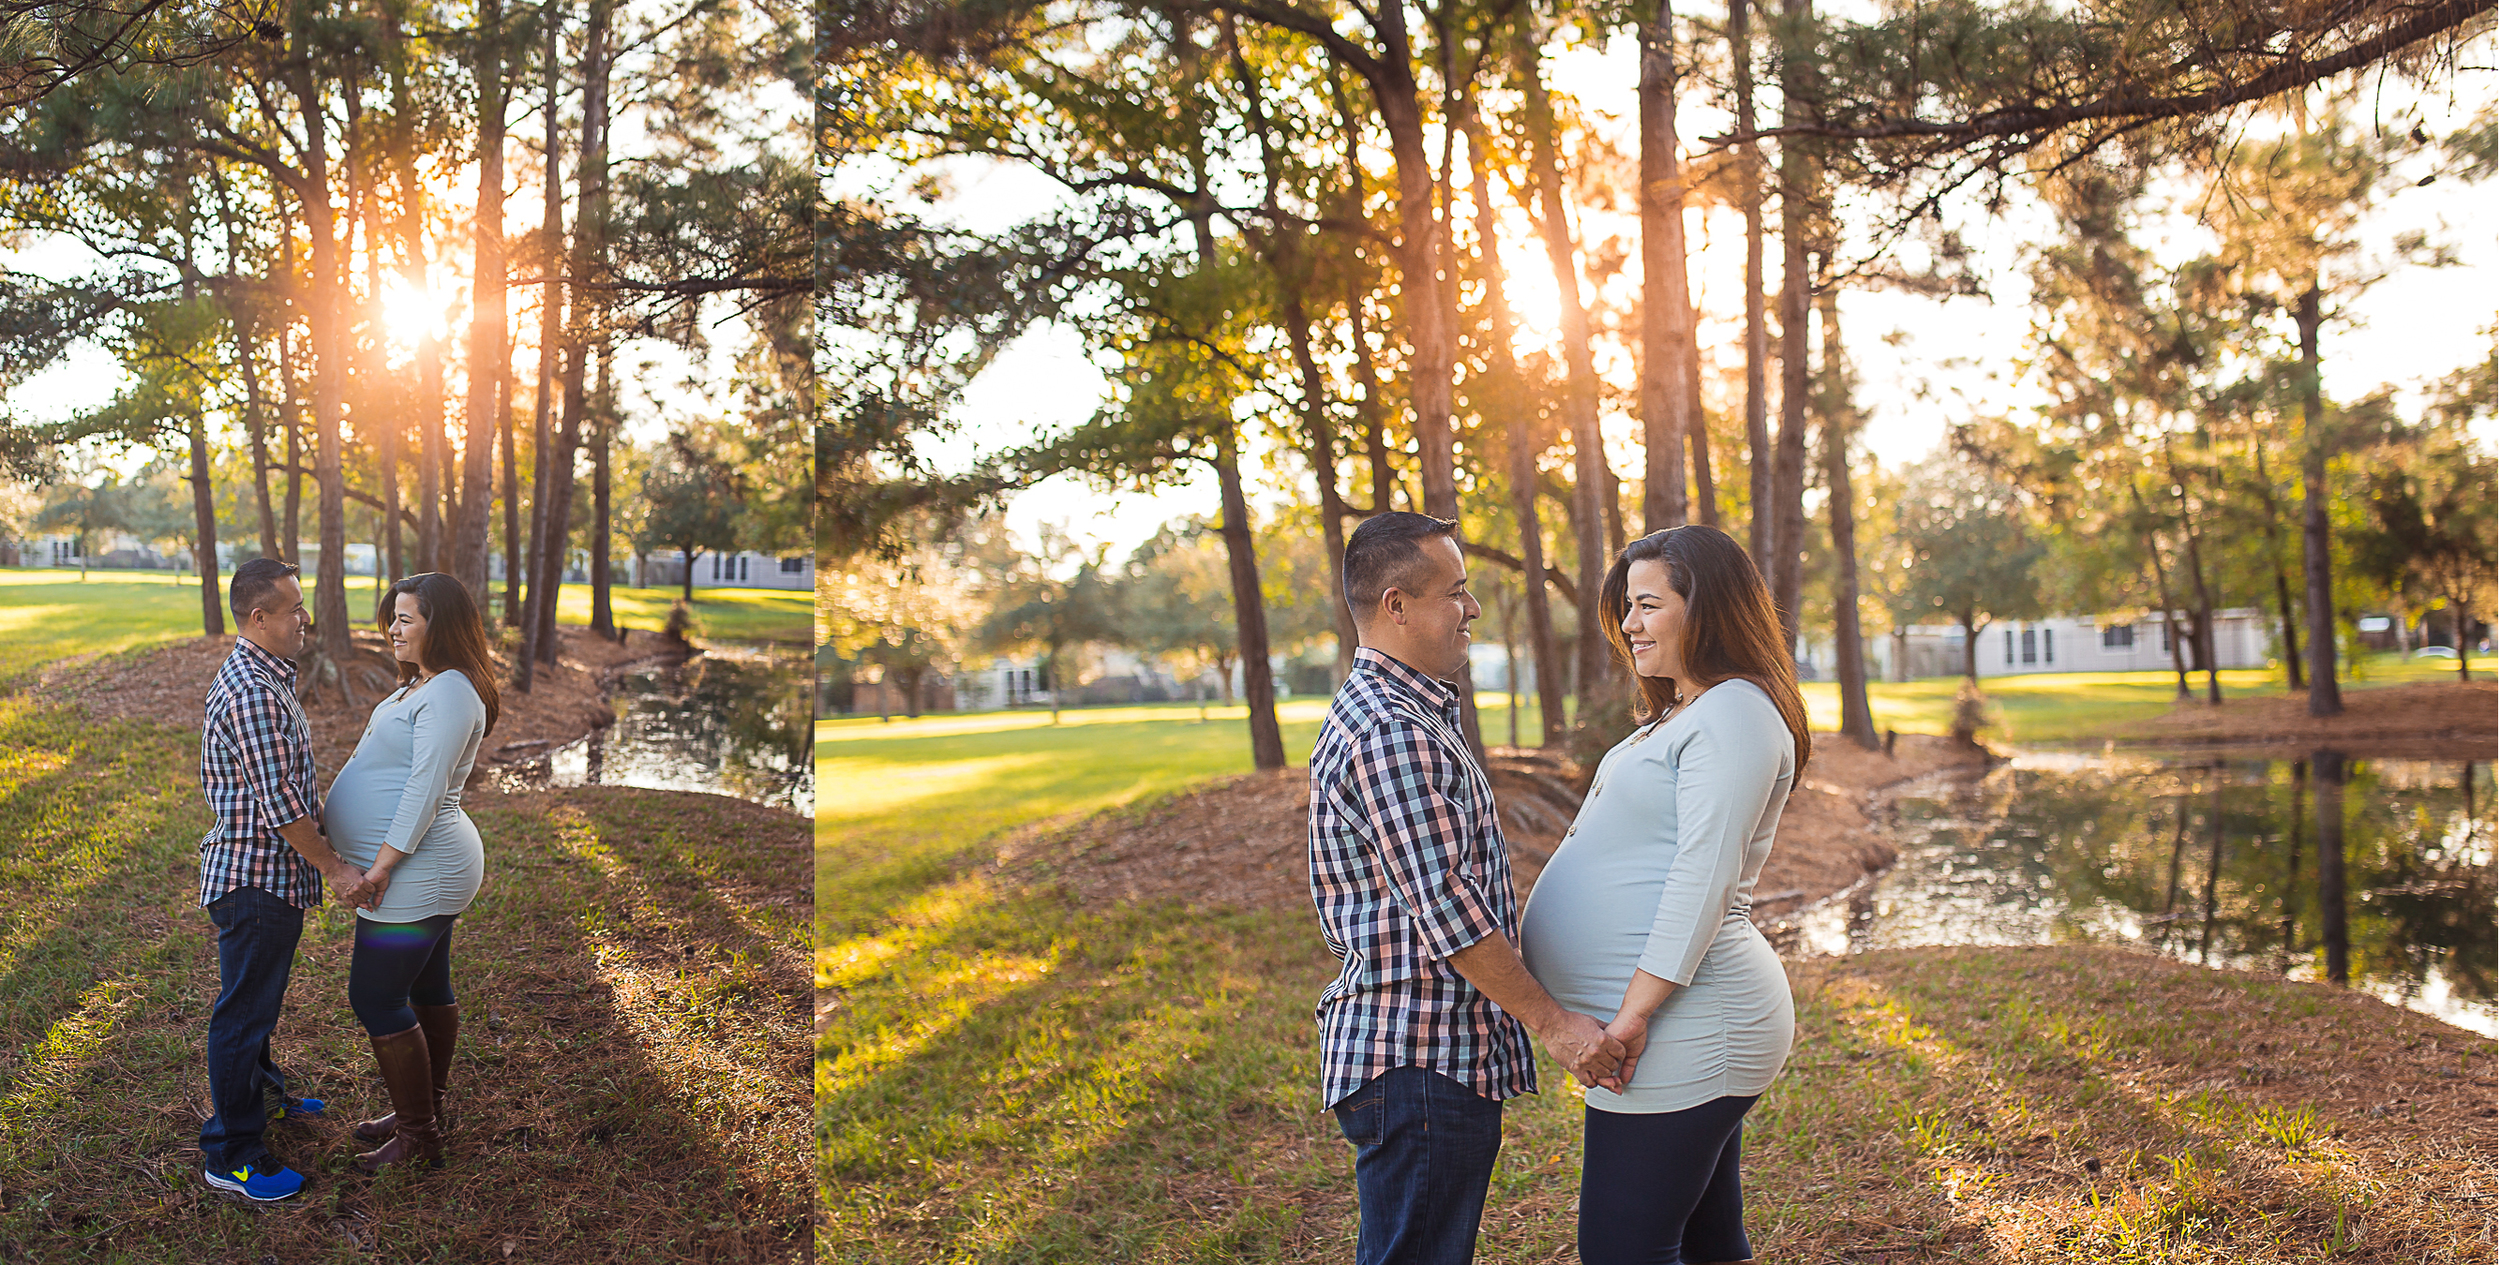 golden hour maternity session by Sarah borchgrevink photography